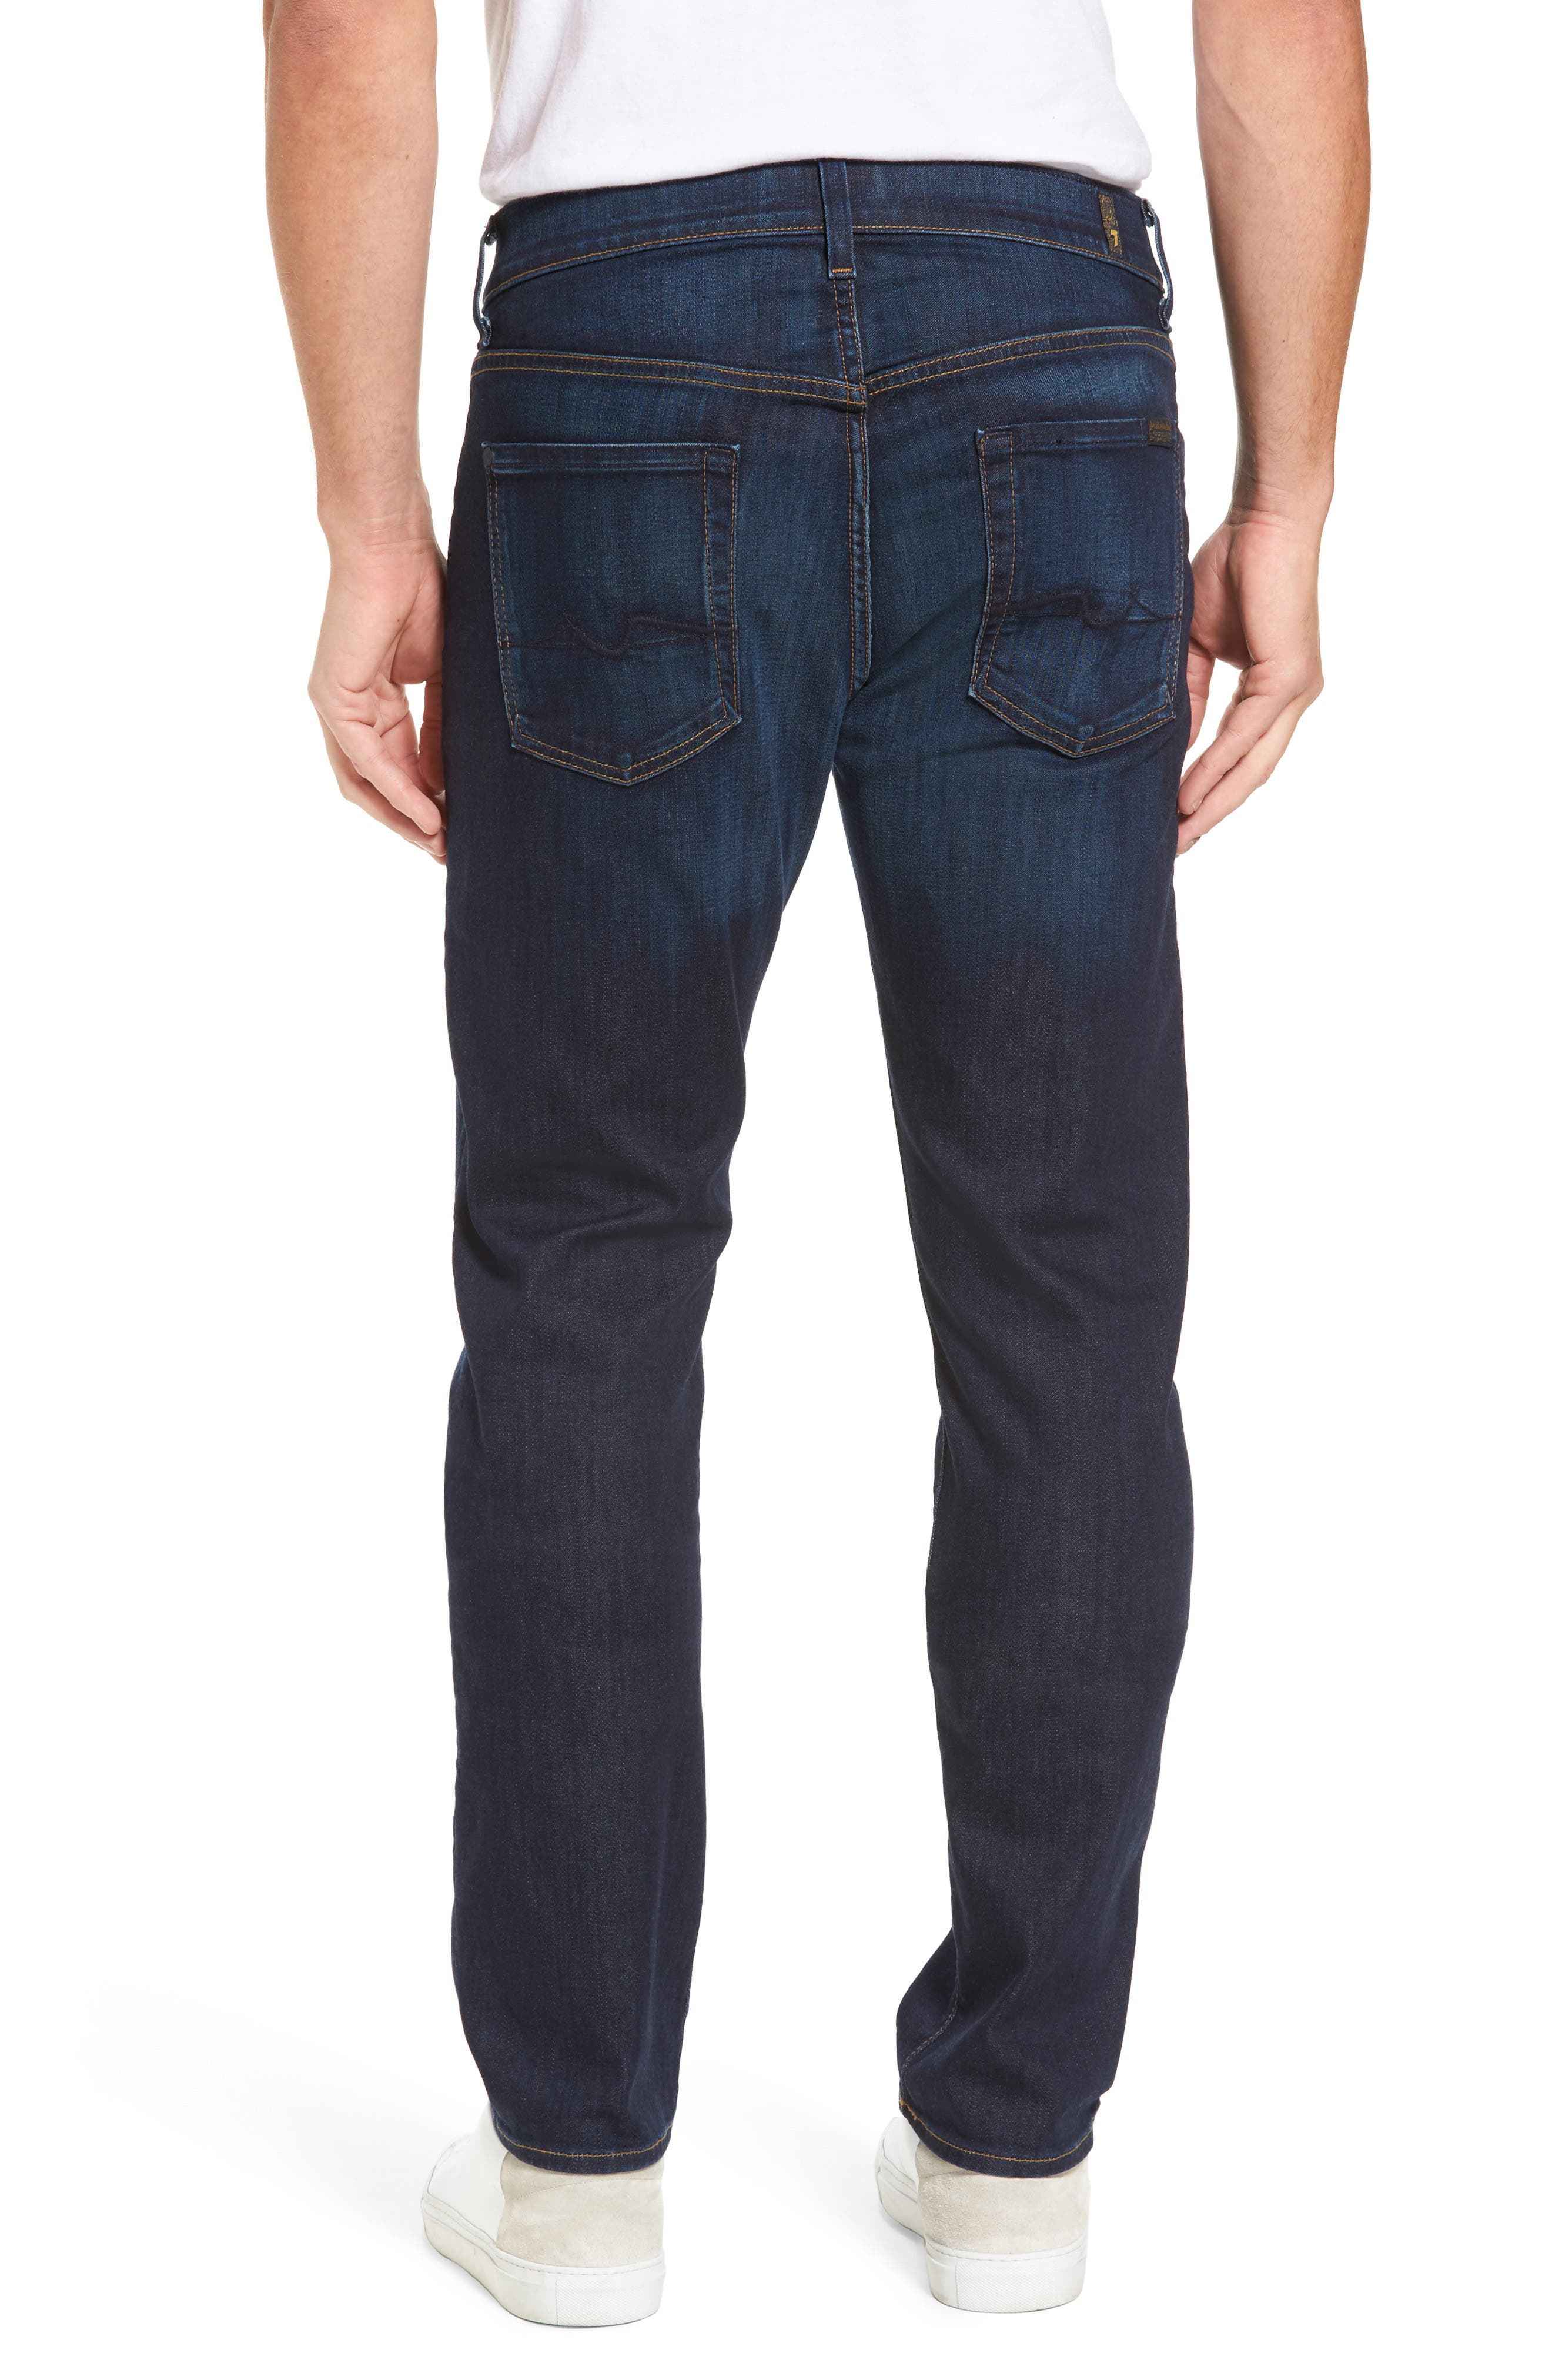 Luxe Performance Straight Leg Jeans,                             Alternate thumbnail 2, color,                             NORTH PACIFIC